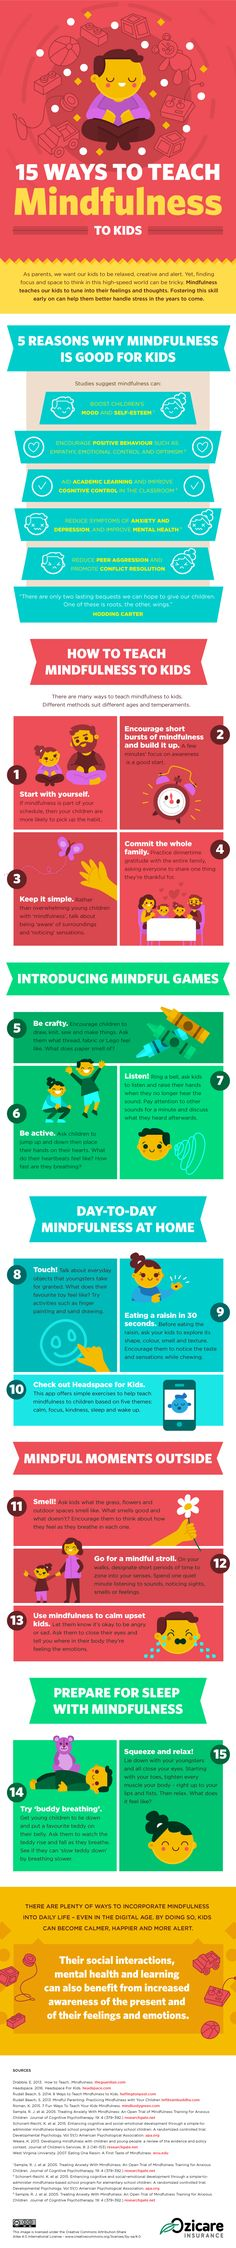 Clever Ways To Teach Mindfulness To Children